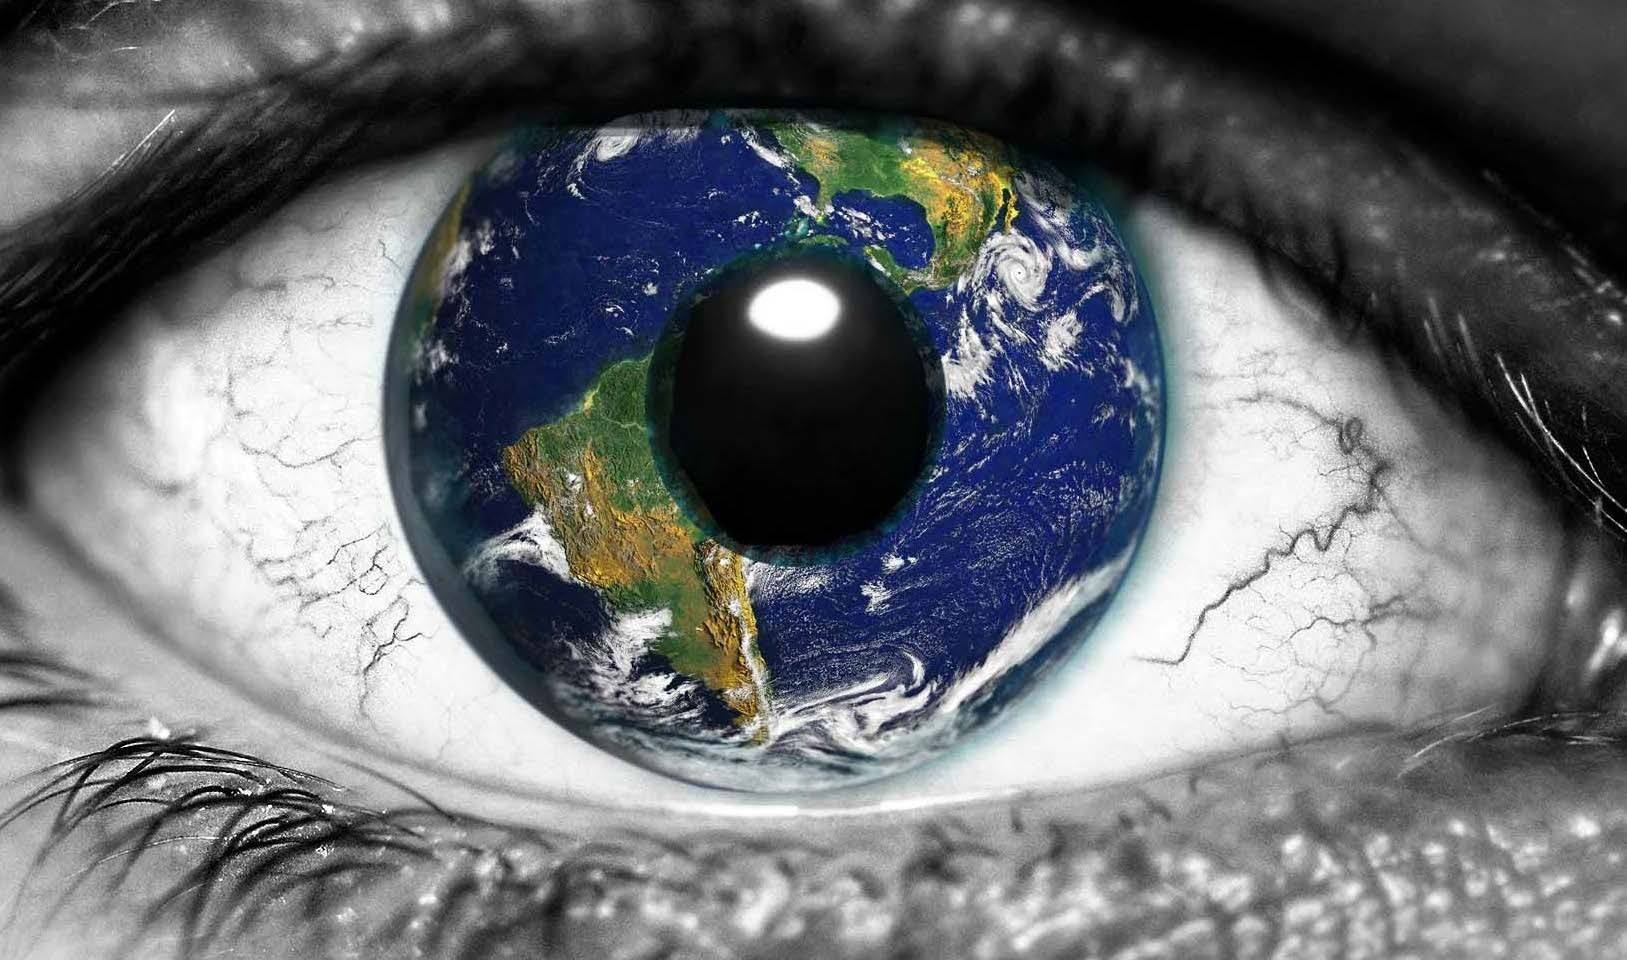 POWERFUL, LIFE-CHANGING VIDEO EXPOSING WHY THE WORLD WE LIVE IN IS A LIE!